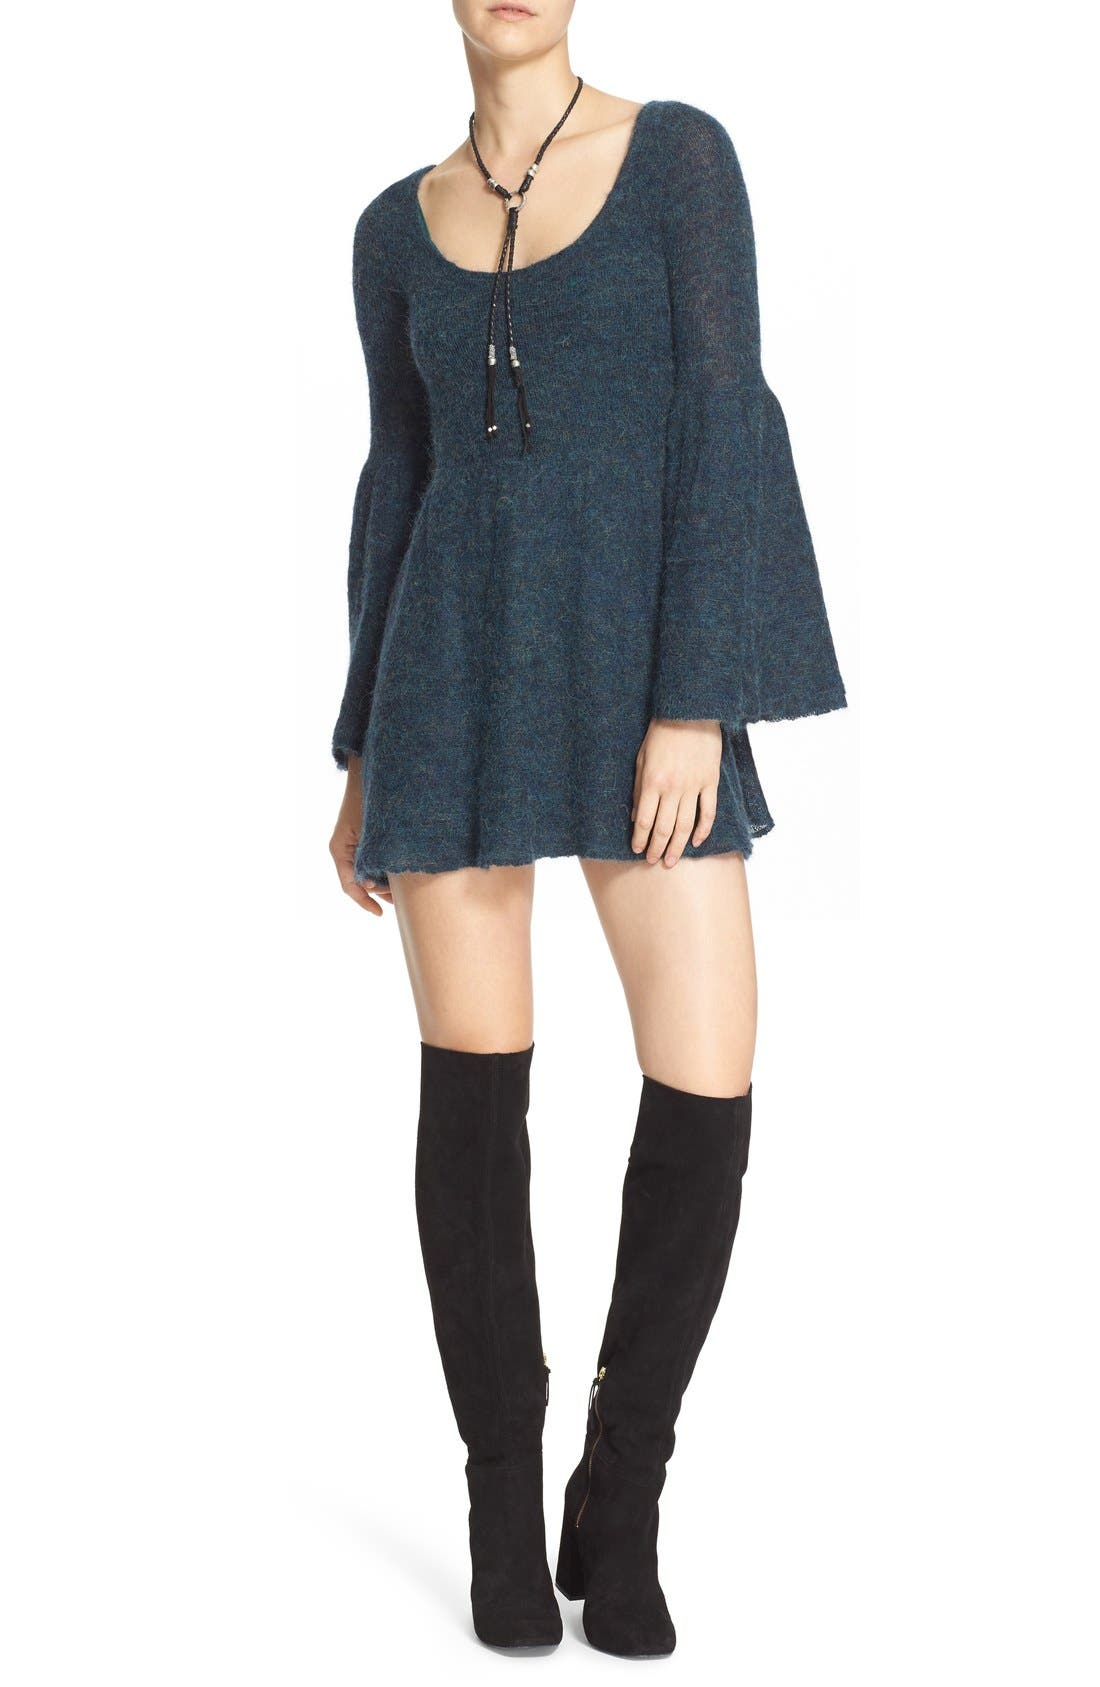 Alternate Image 1 Selected - Free People 'Juliet' Babydoll Sweater Dress